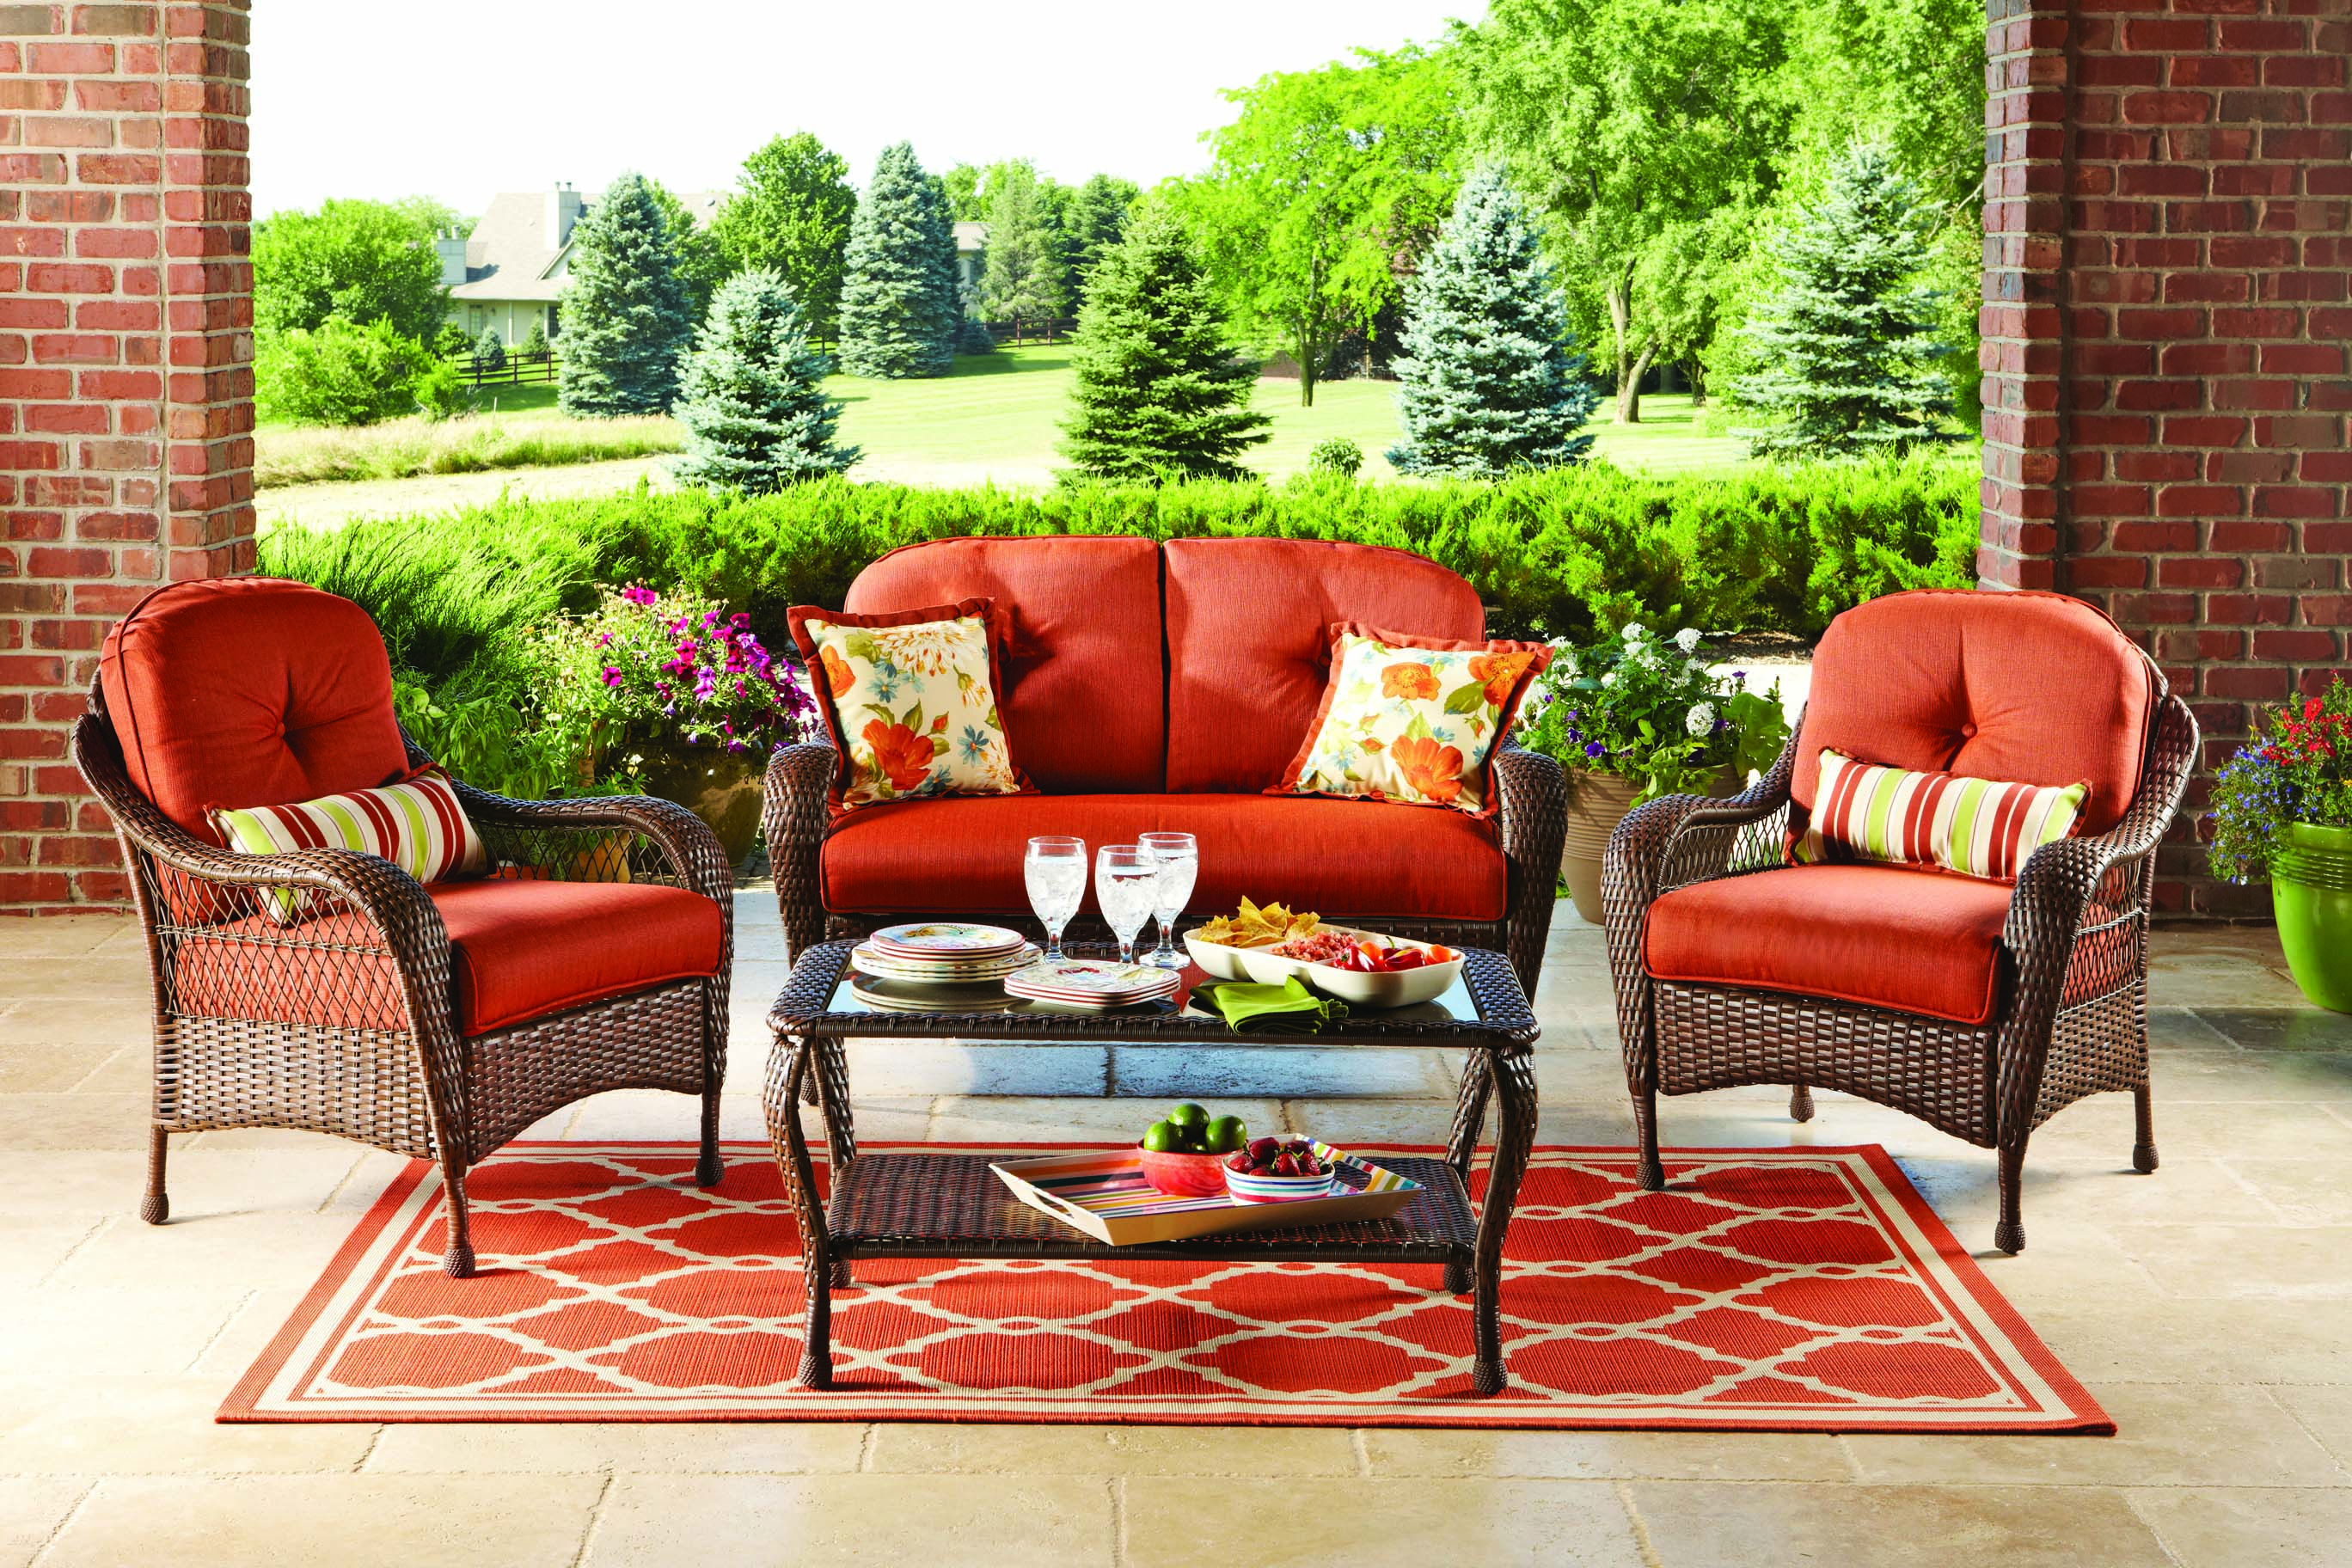 Patio & Garden Sectional patio furniture, Patio design